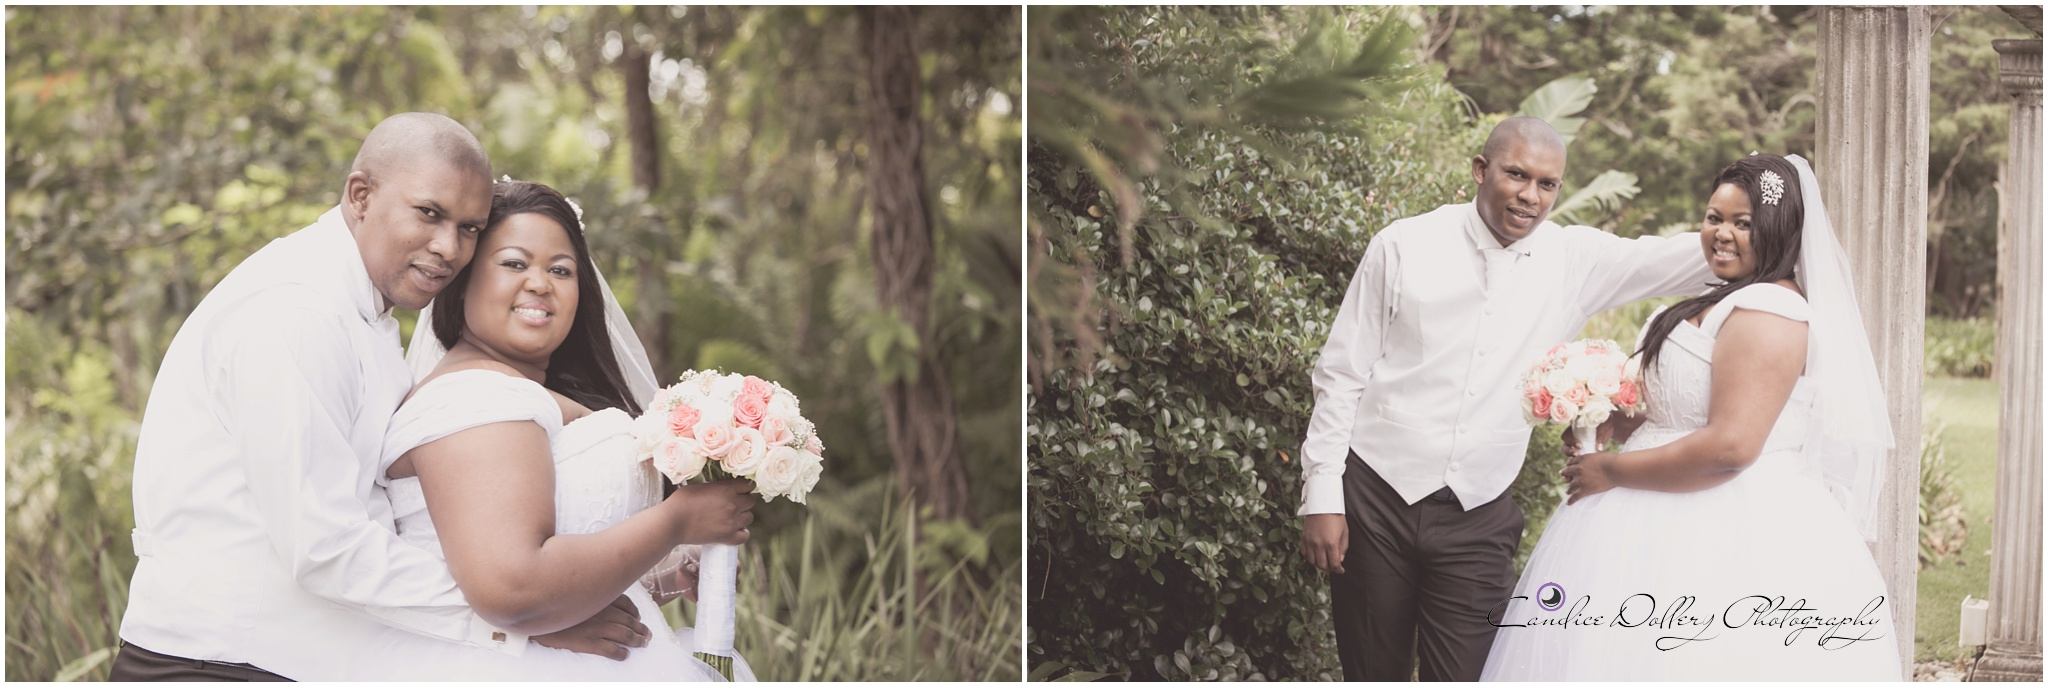 Wedding Gonubie Manor Thola & Phili-Candice Dollery Photograhy_4244